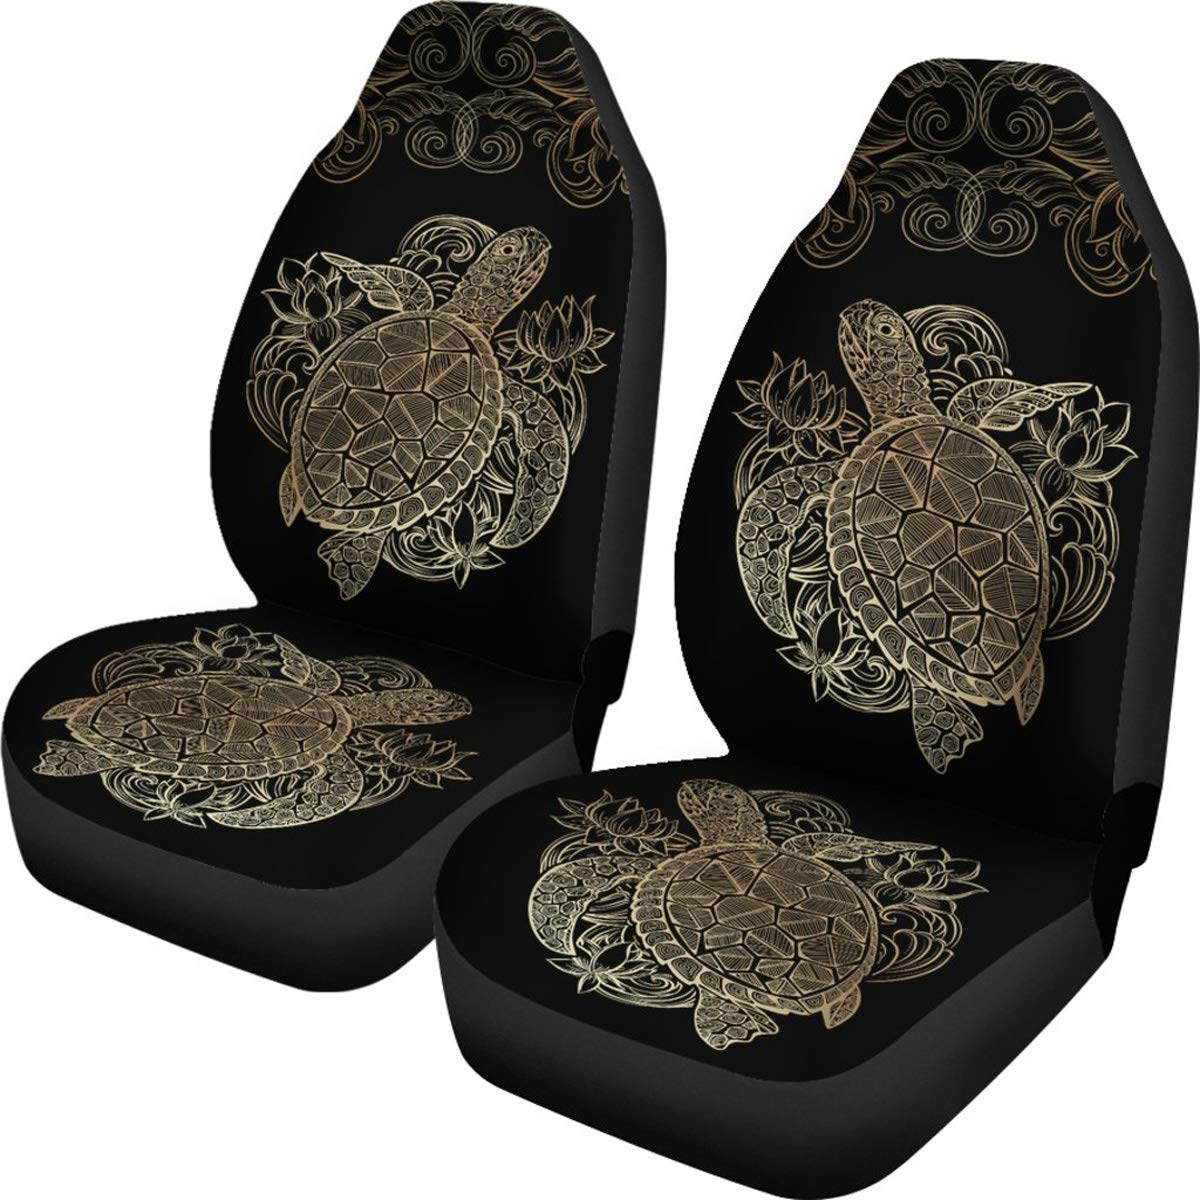 Peachy Amazon Com Turtle Car Seat Covers Turtle Seat Covers Car Uwap Interior Chair Design Uwaporg